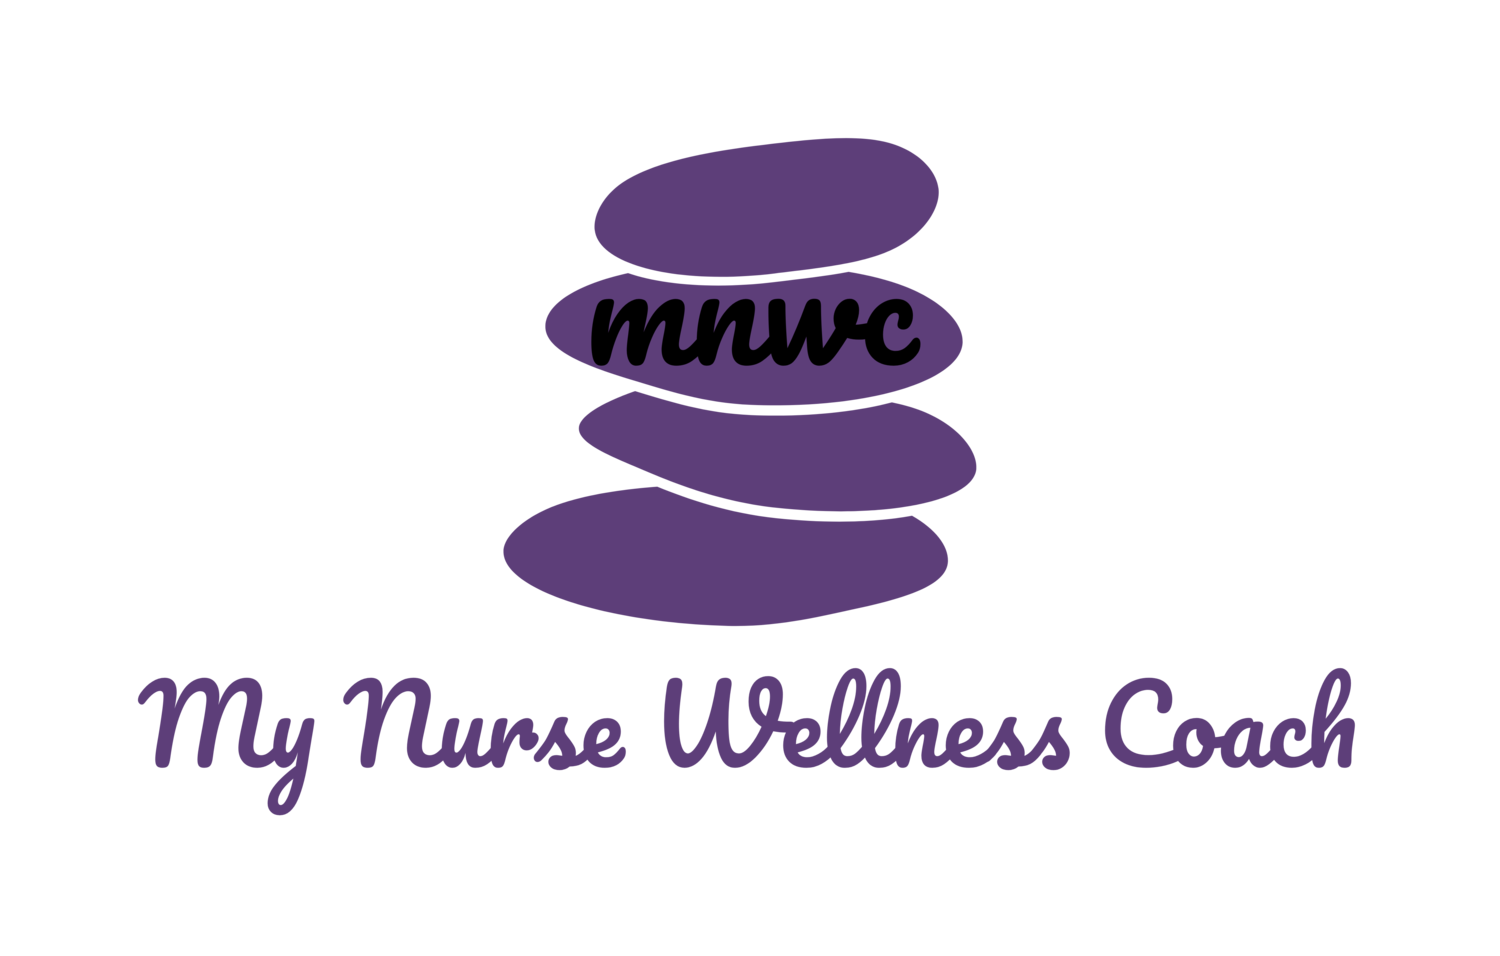 My Nurse Wellness Coach